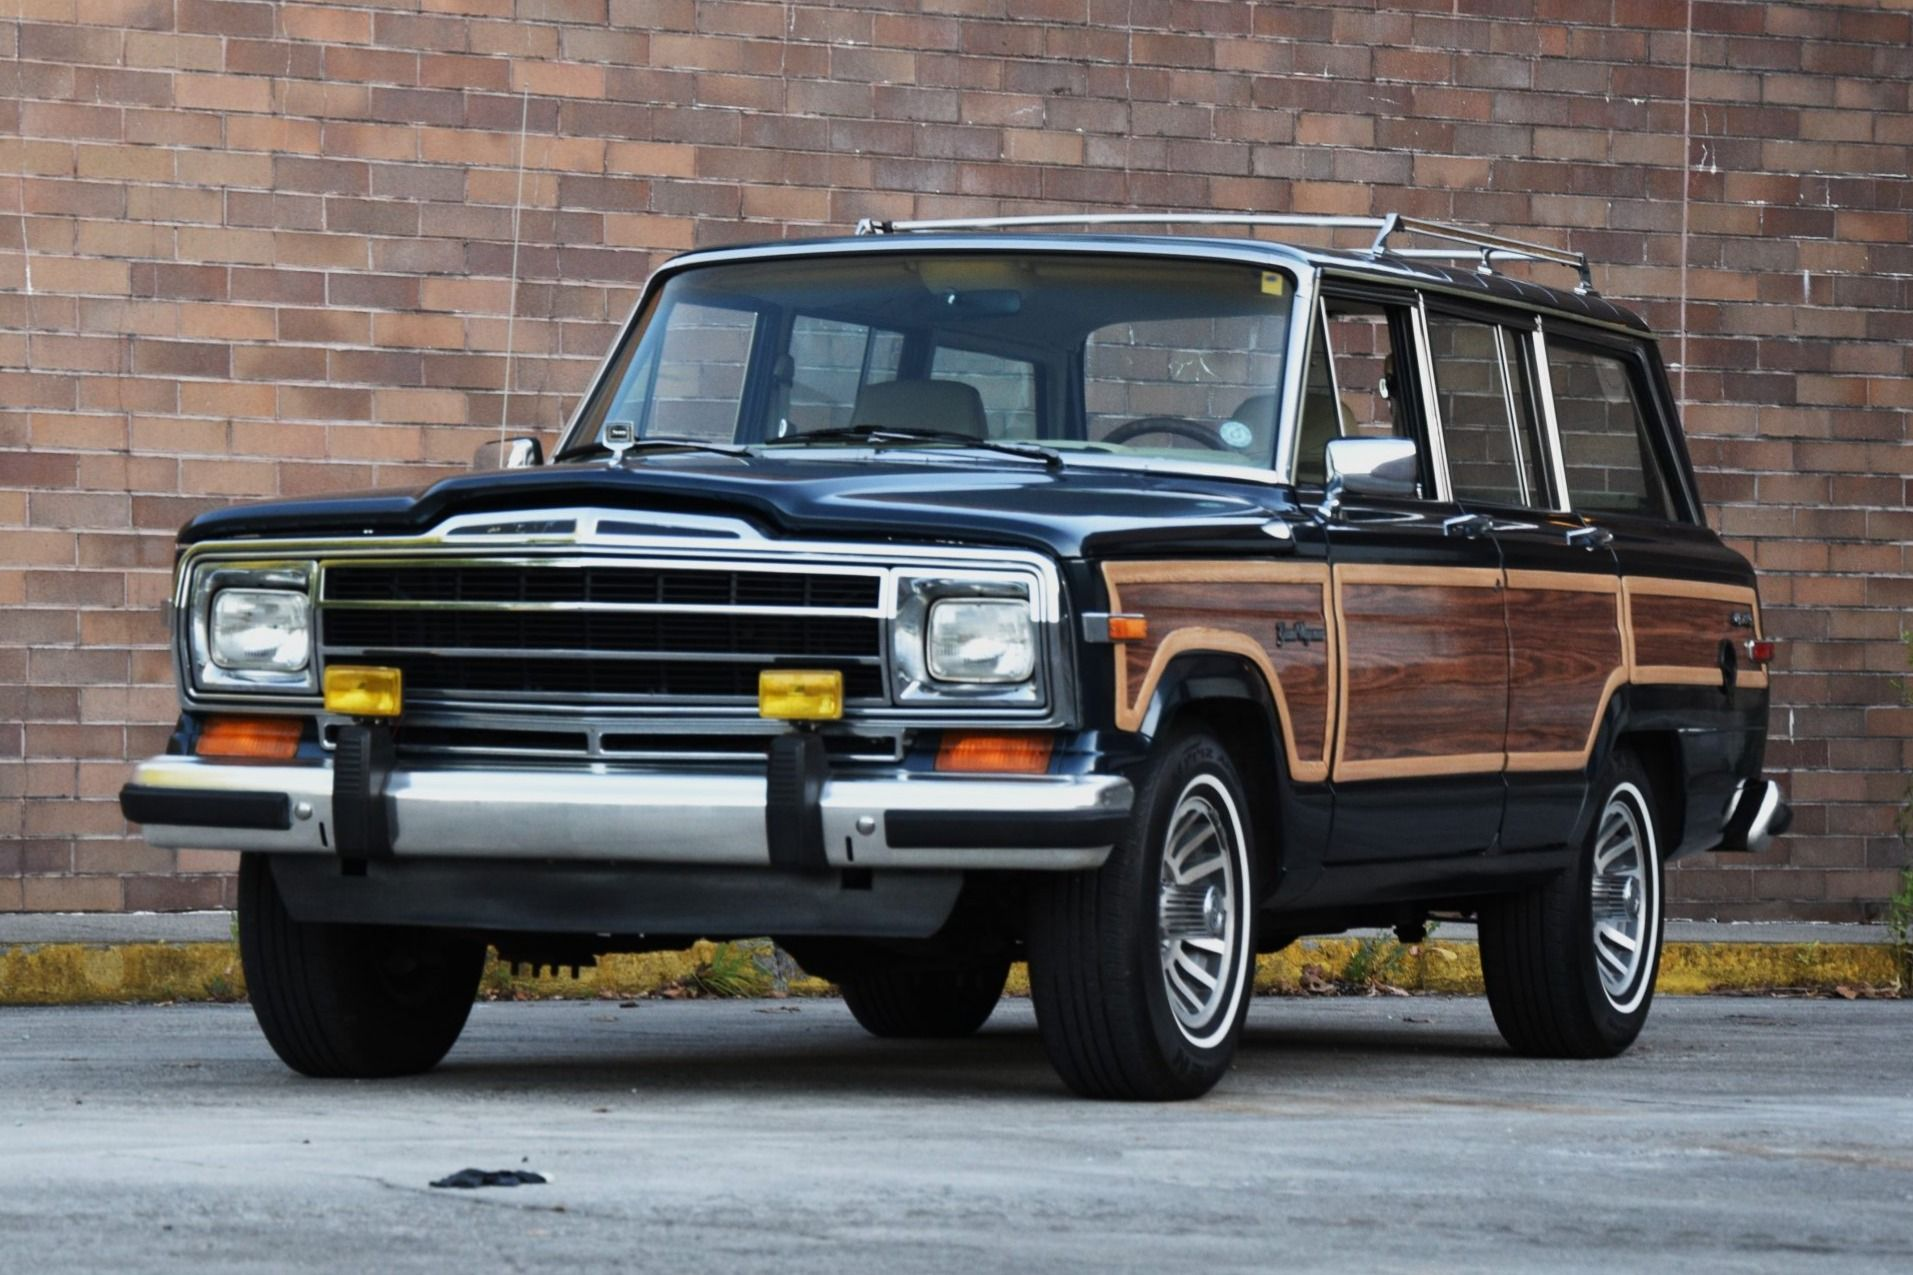 1989 Jeep Grand Wagoneer In 2020 Jeep Jeep Grand Classic Cars Online